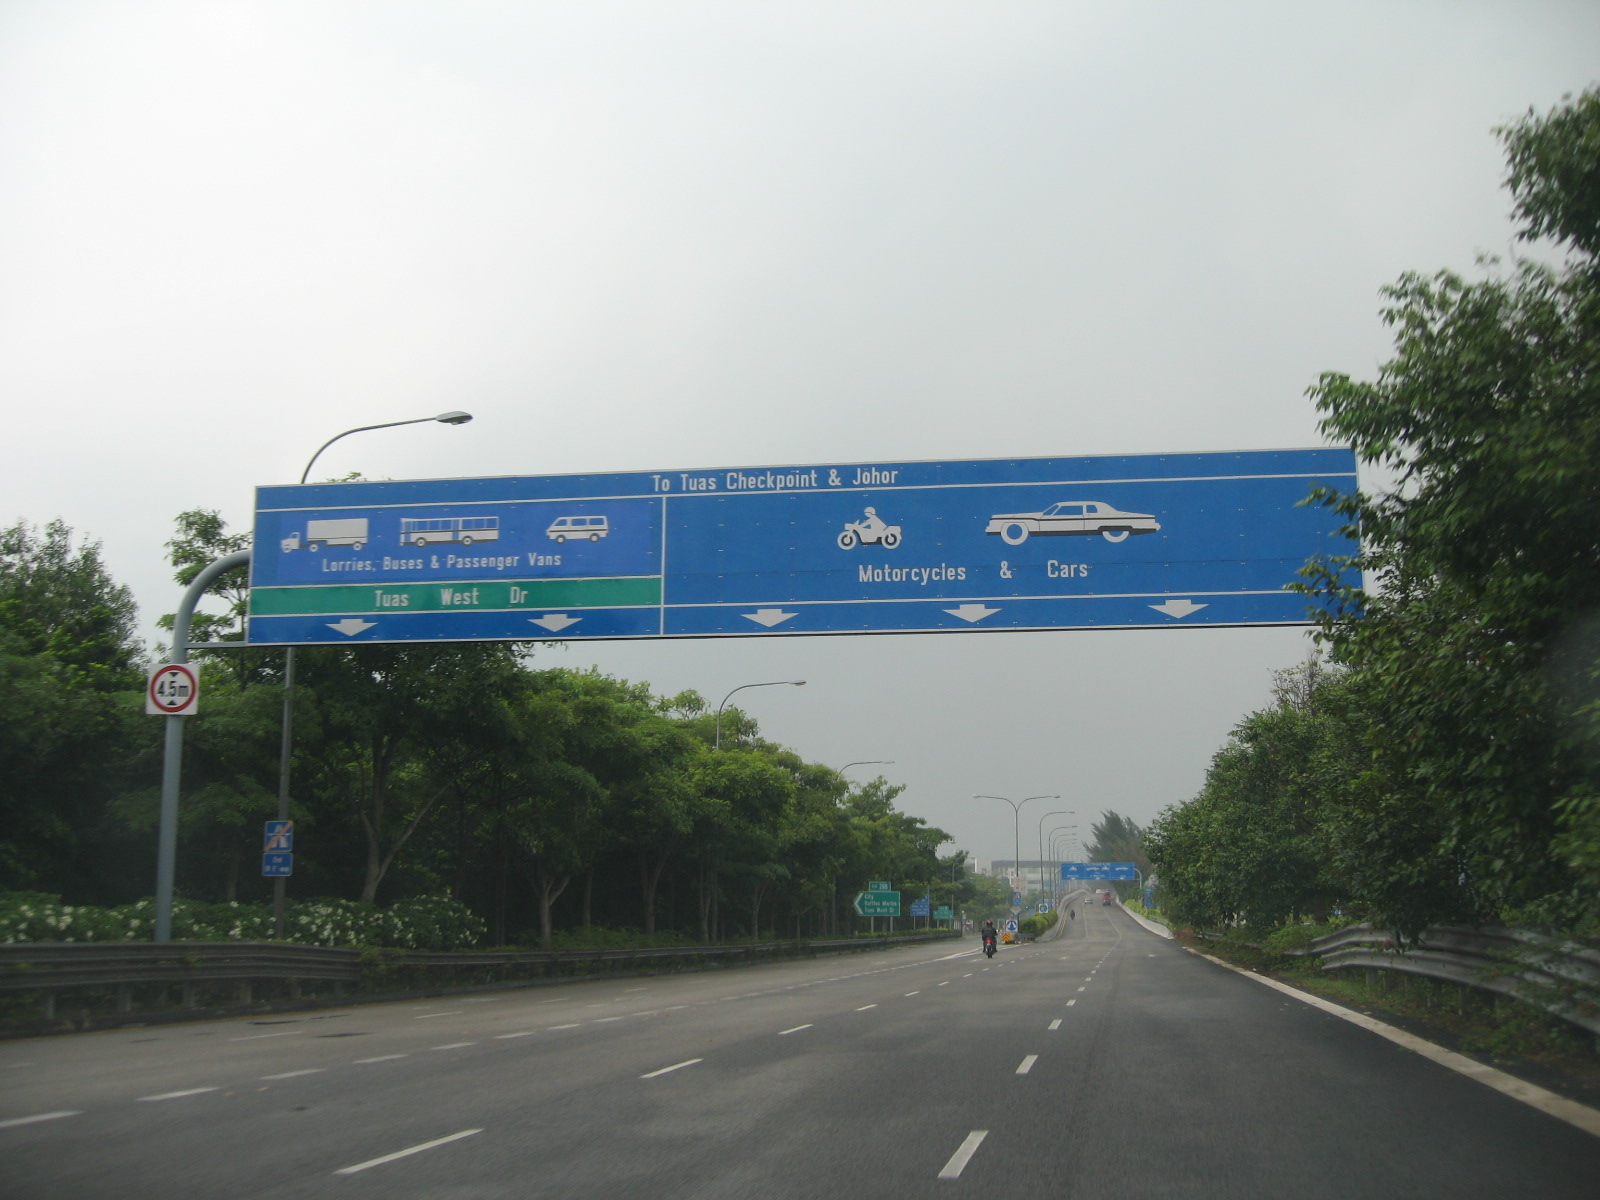 File:AYE before TUAS CHECKPOINT.JPG - Wikimedia Commons